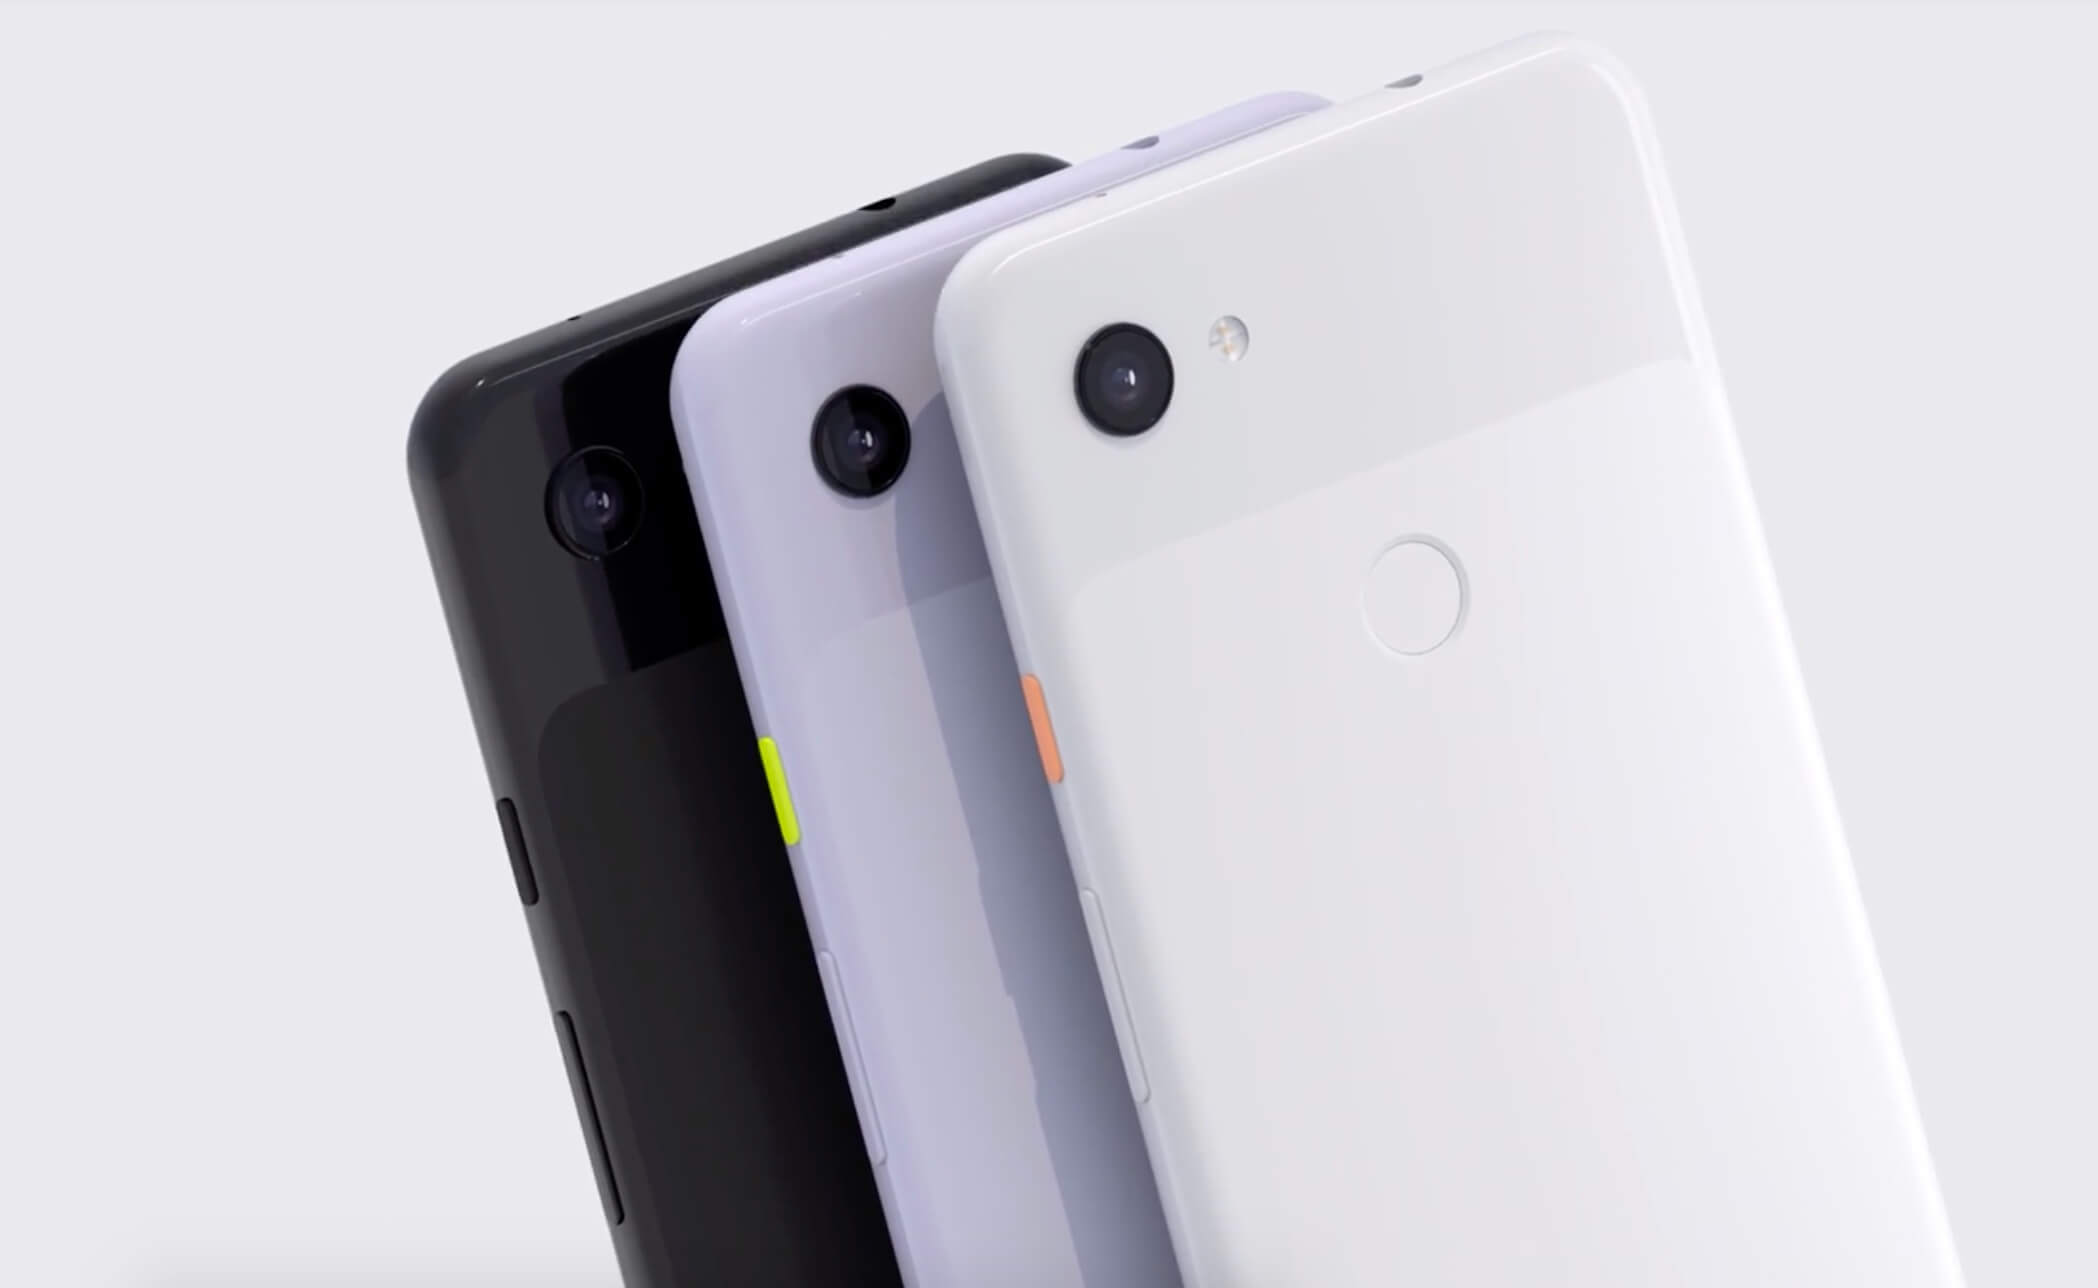 New flaw emerges in Google Pixel 3a and 3a XL devices